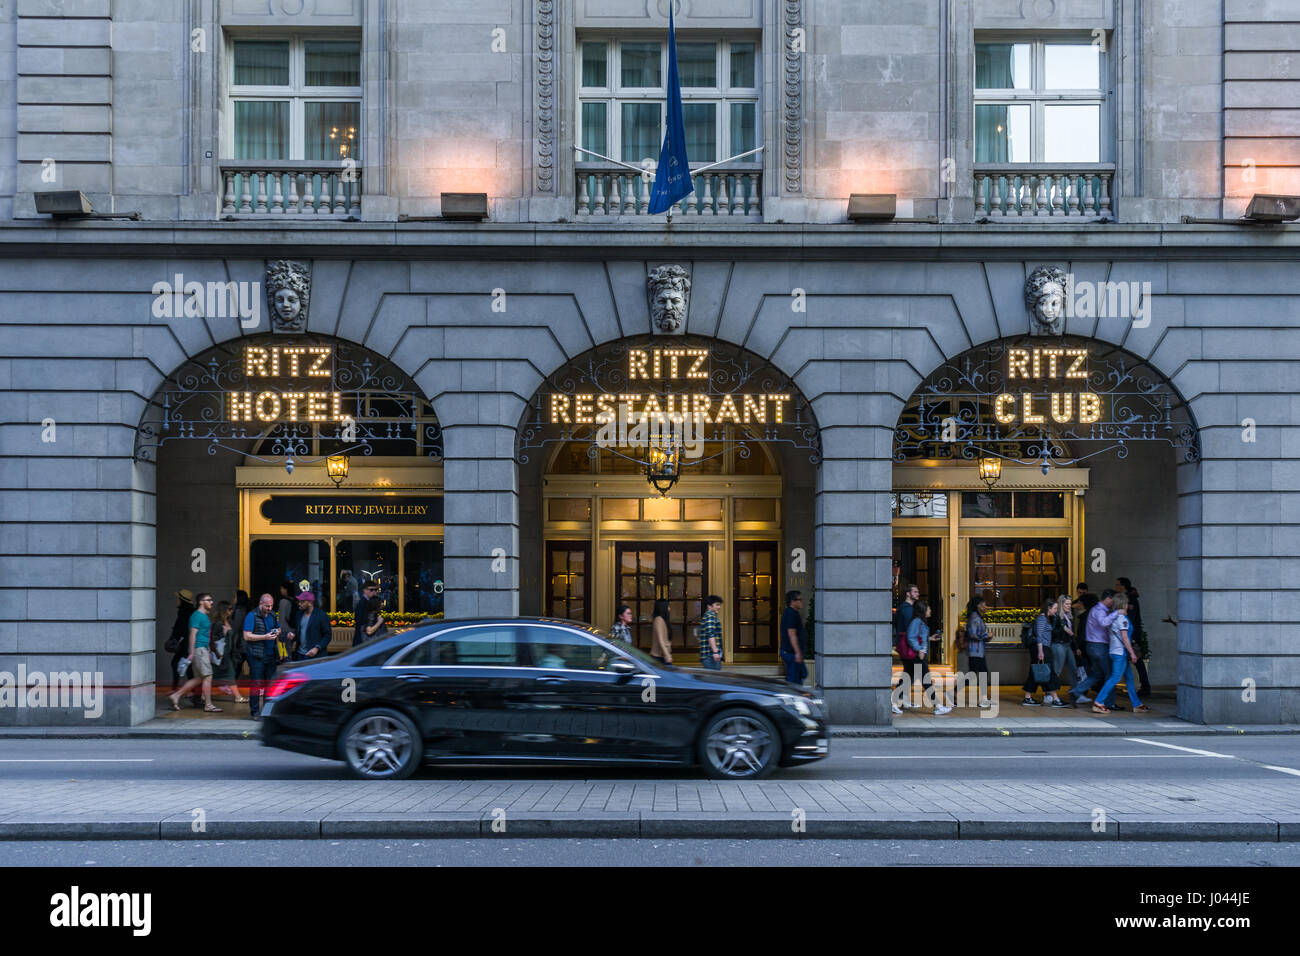 A luxury car passes the entrance to the Ritz Restaurant at 150 Piccadilly, St Jame's London - England. - Stock Image